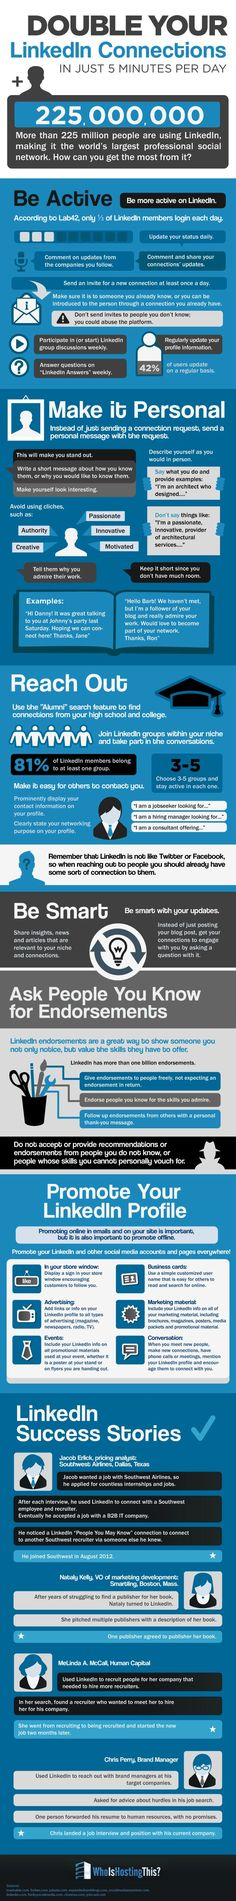 Double Your LinkedIn Connections In Just 5 Minutes Per Day #infographic